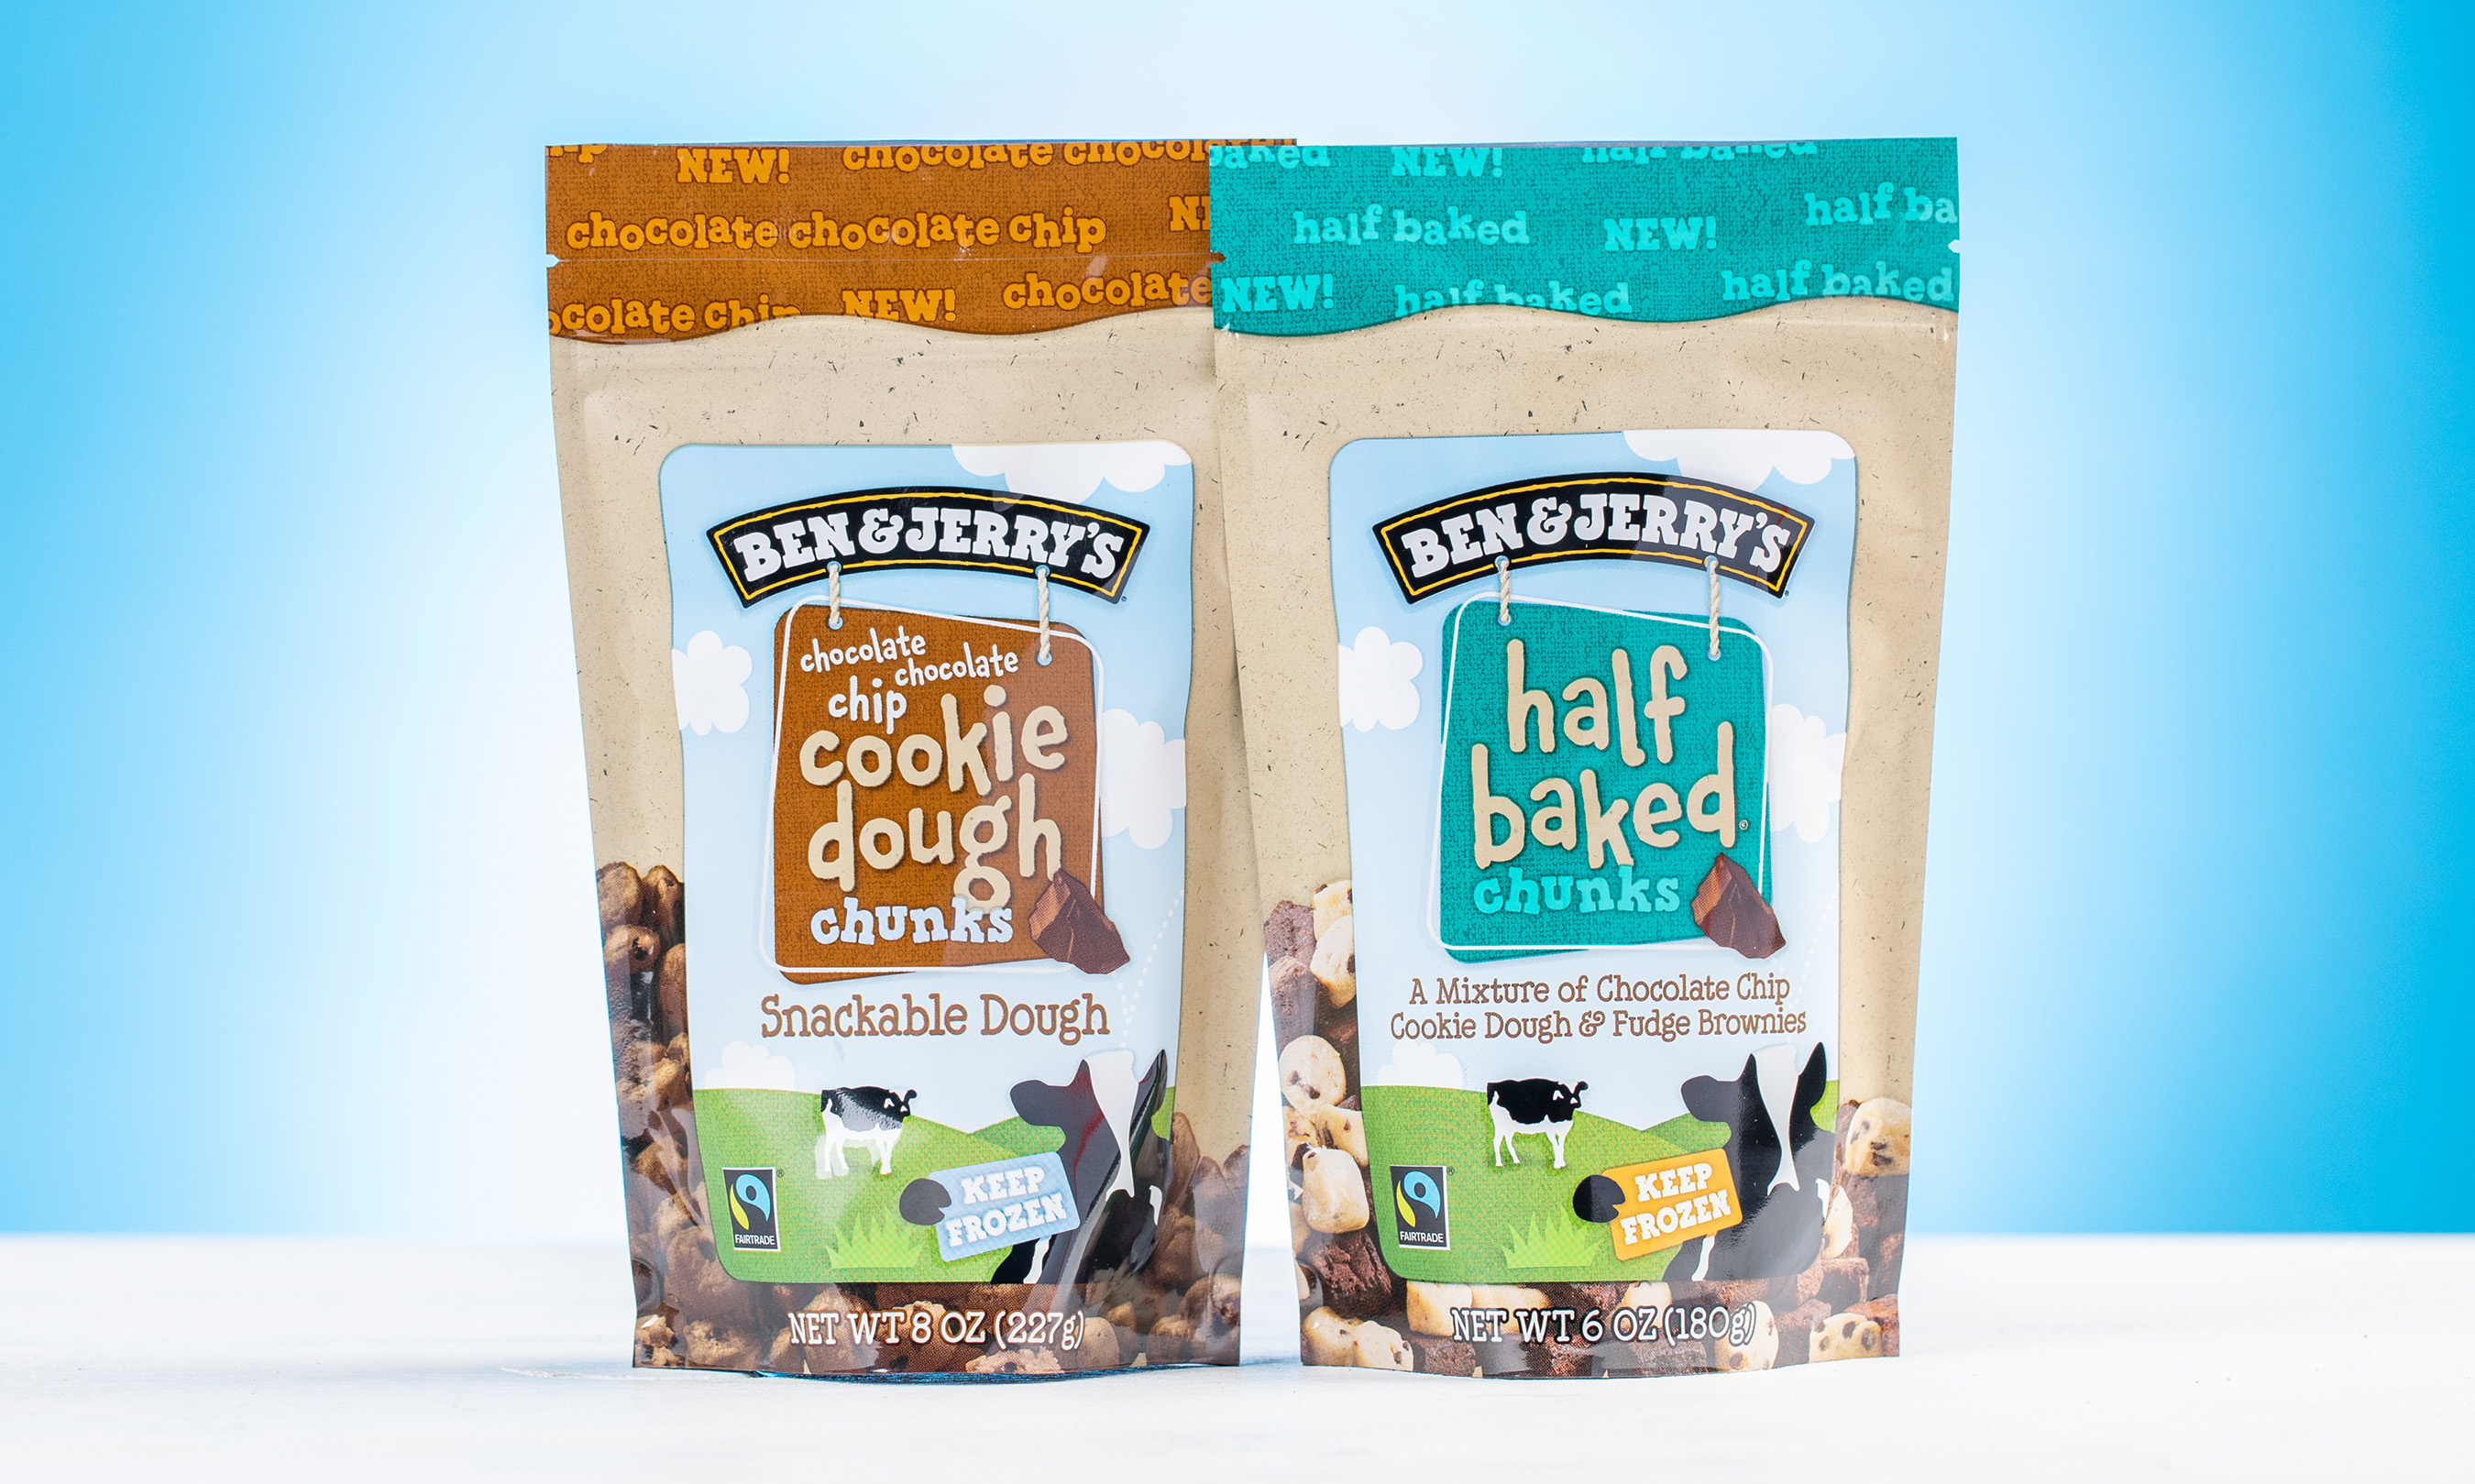 Ben & Jerry's has added two new flavors to their collection of cookie dough chunks. Drop your spoon and dig in!